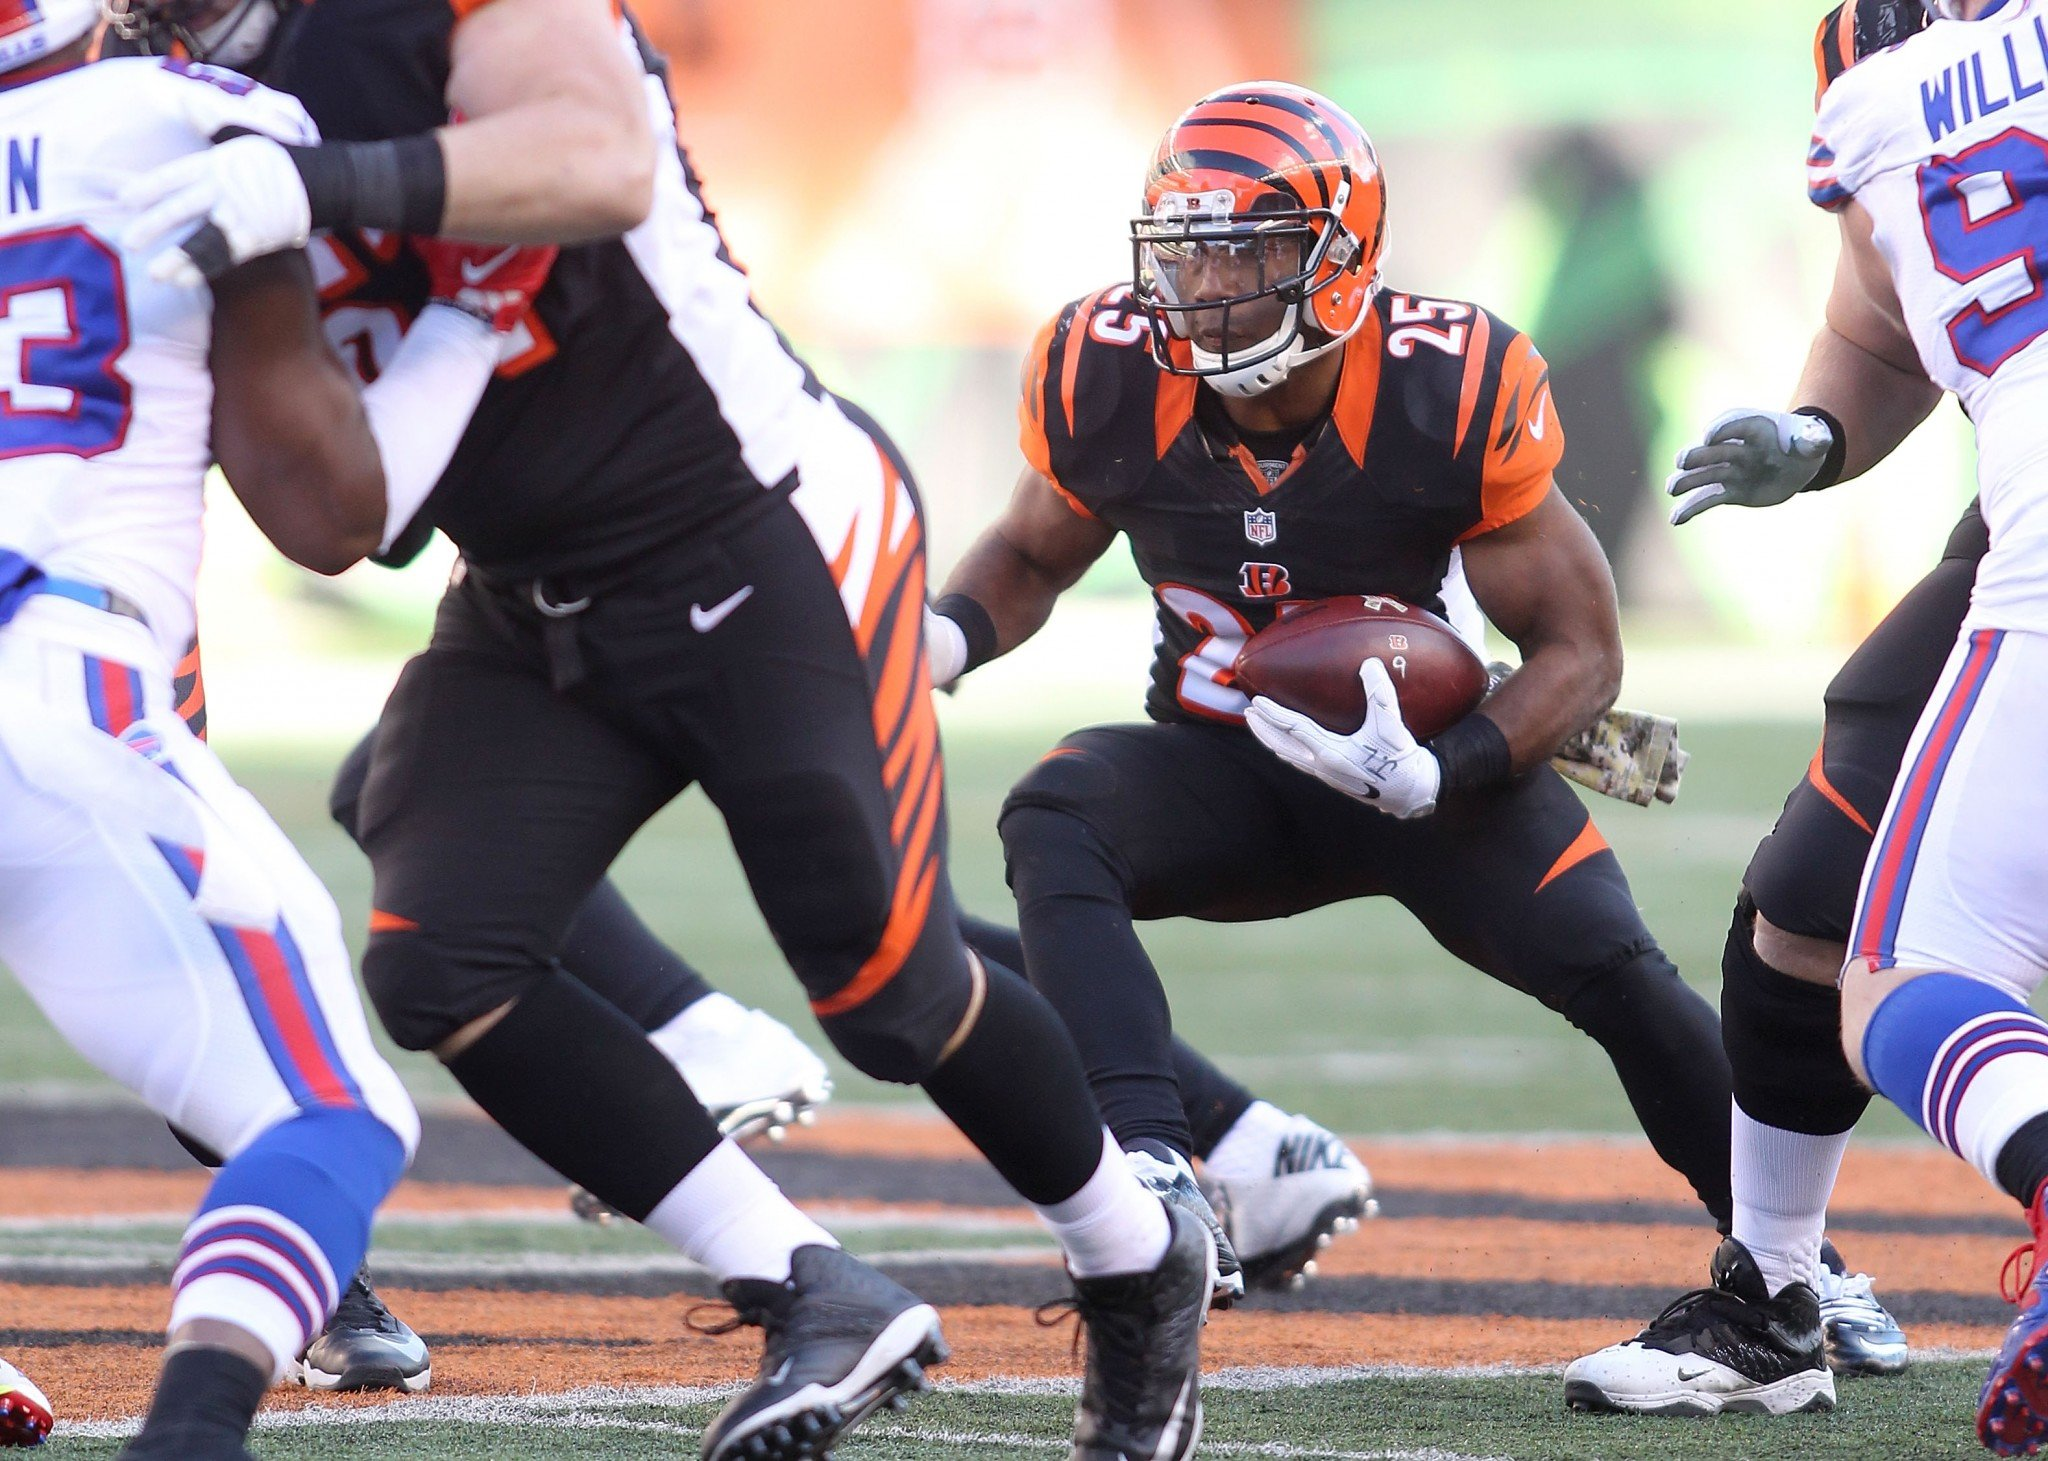 The Cincinnati Bengals might have lost running back Giovani Bernard to a torn ACL in Sunday's loss. (Getty Images)